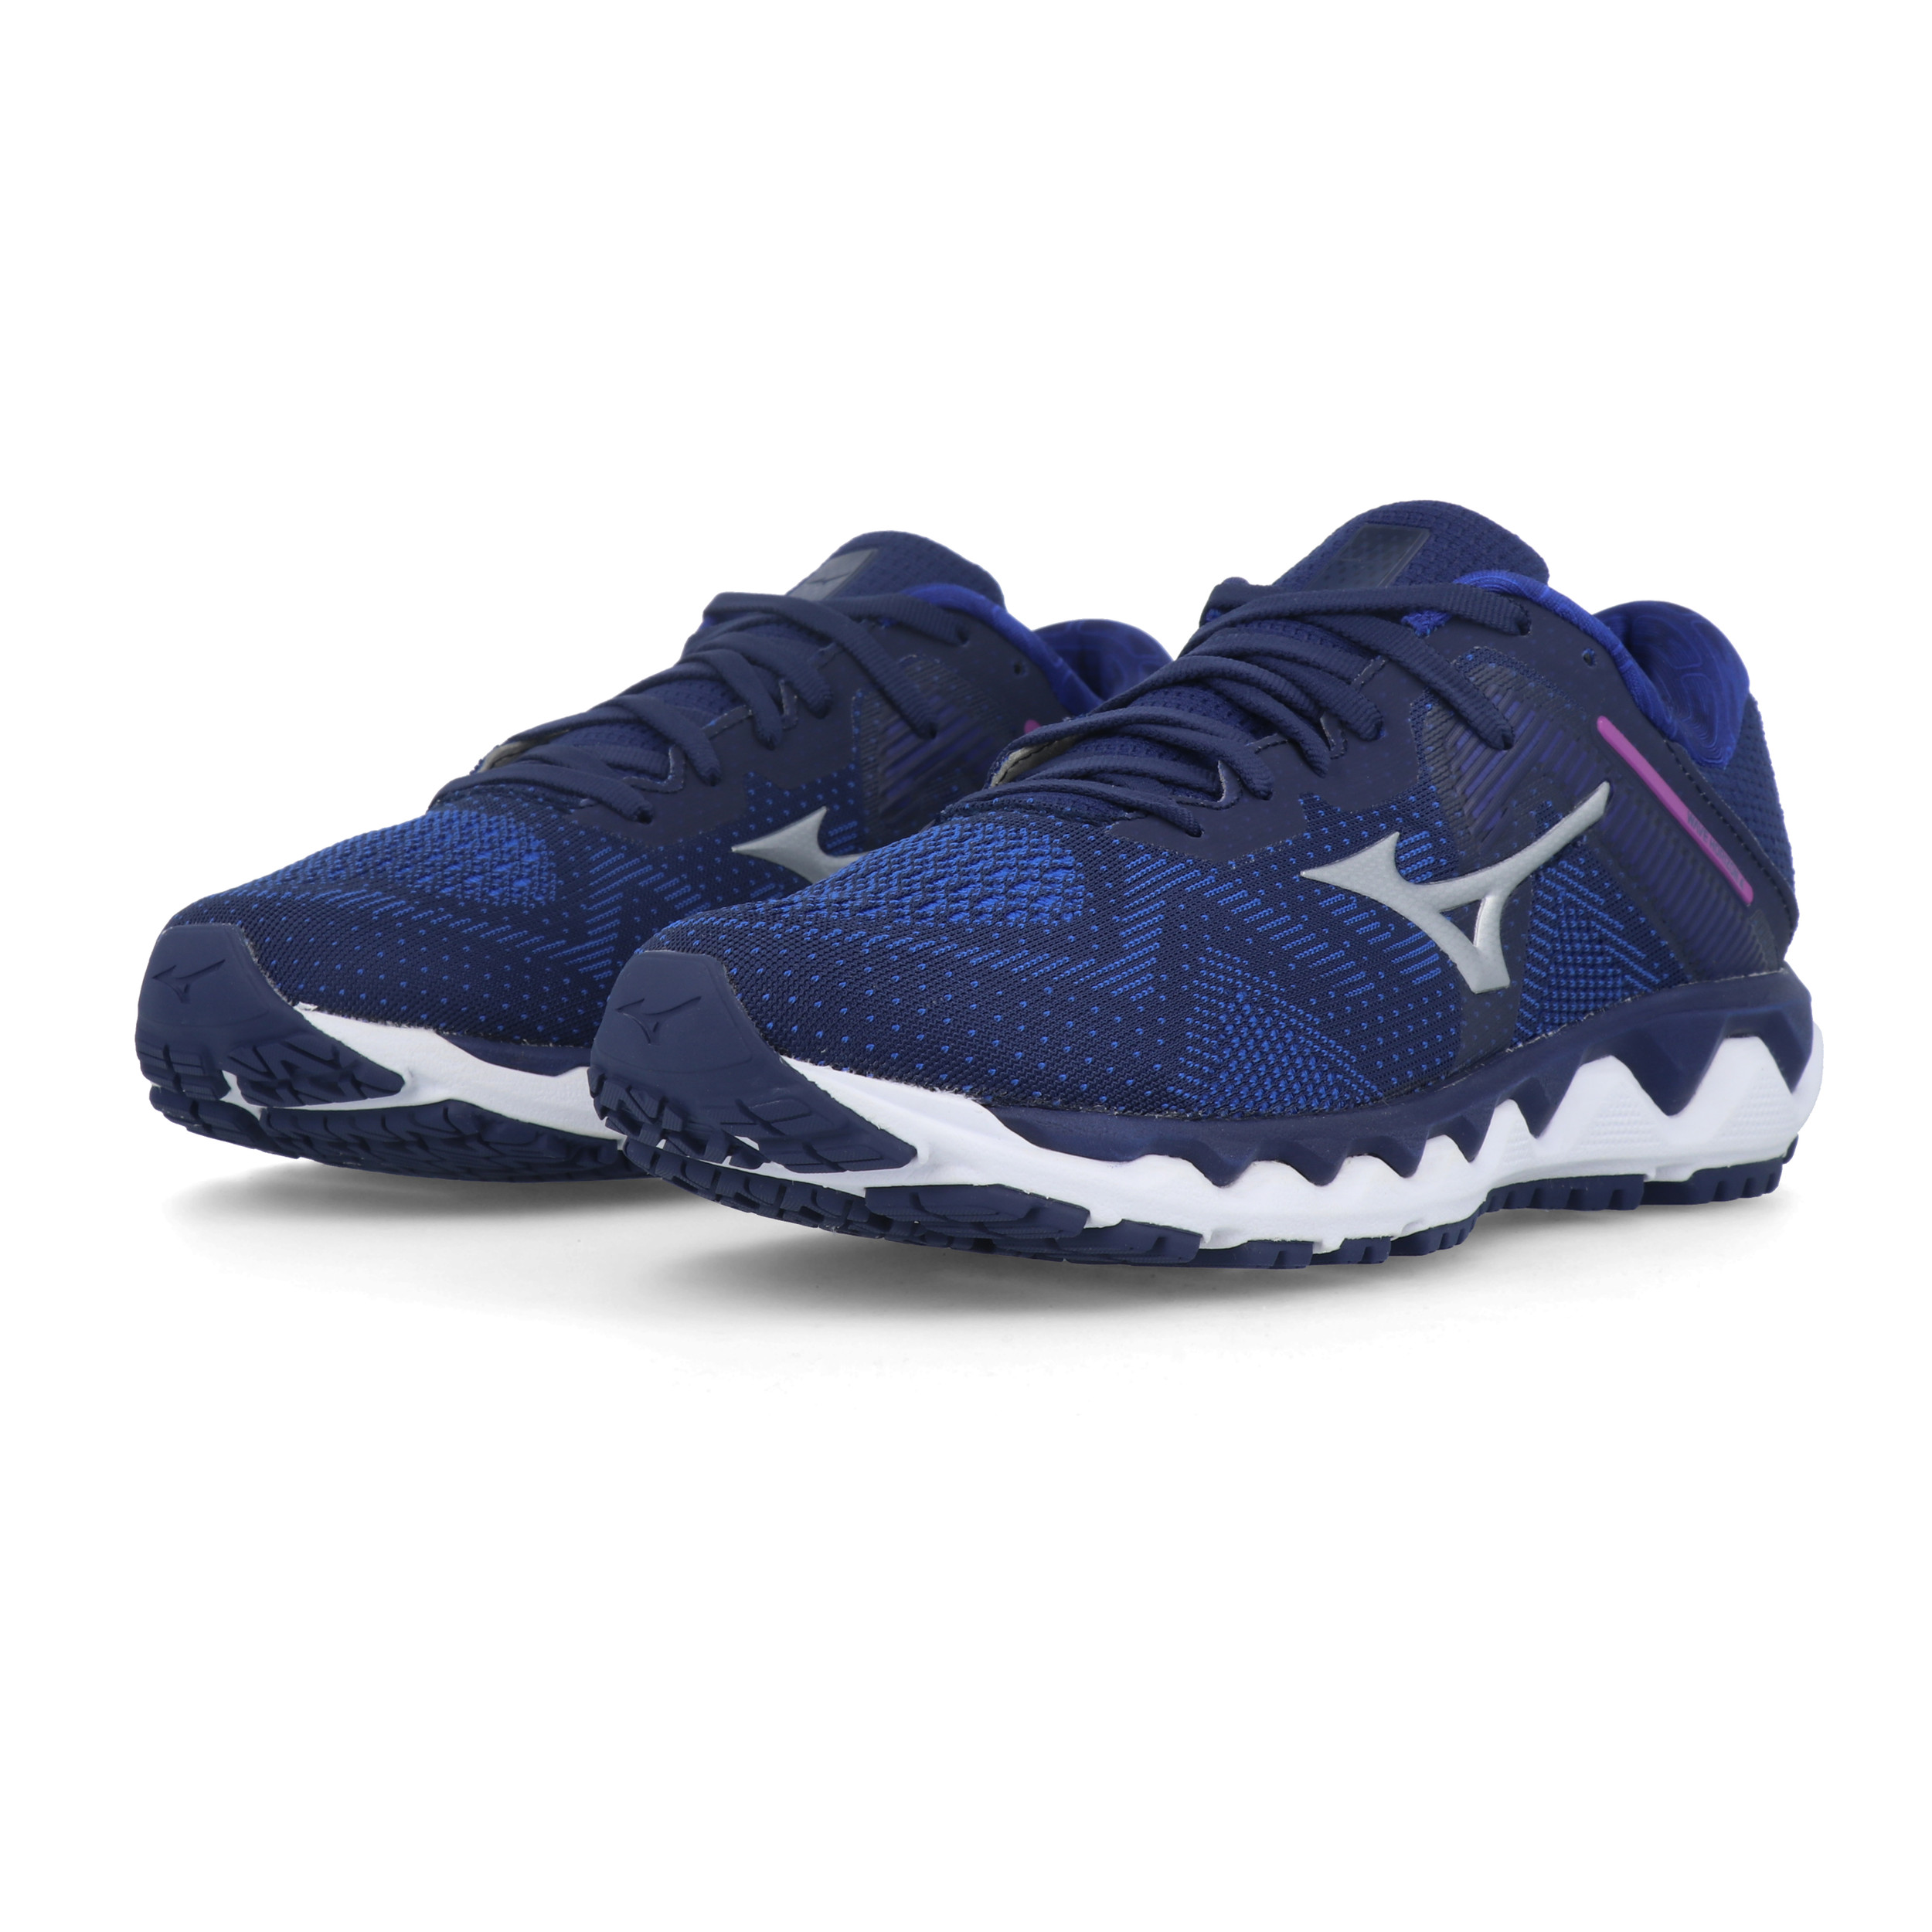 Mizuno Wave Horizon 4 Women's Running Shoes - SS20